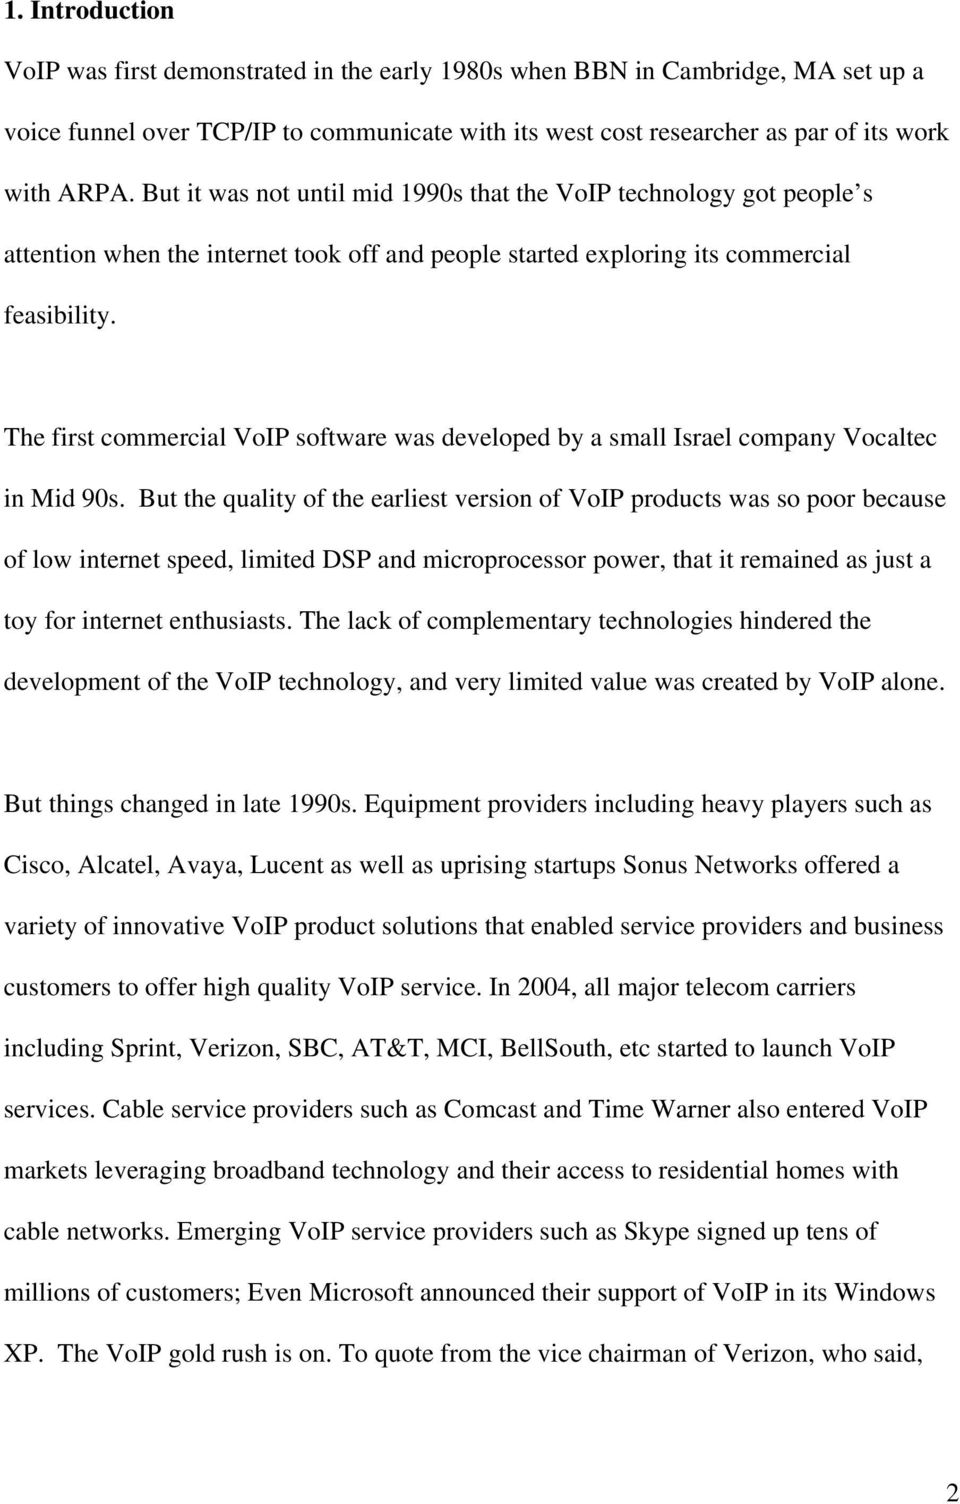 The first commercial VoIP software was developed by a small Israel company Vocaltec in Mid 90s.